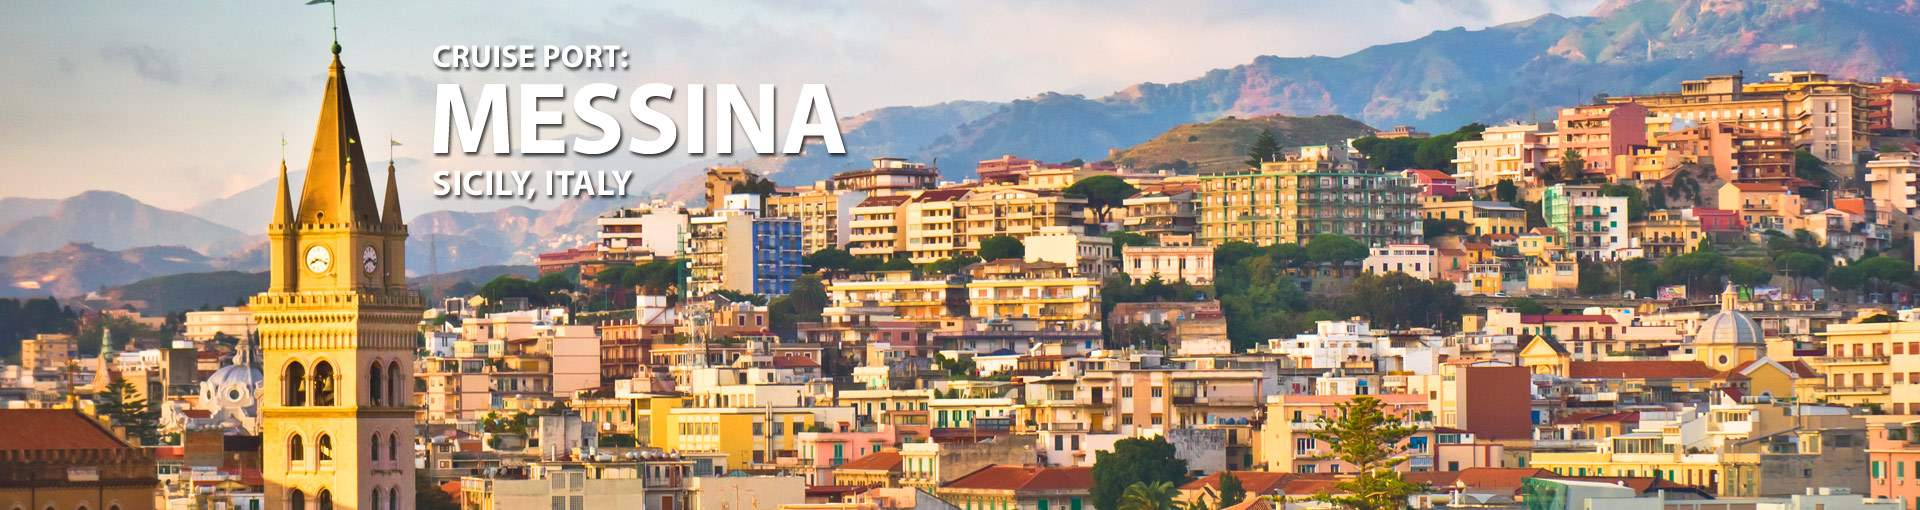 Cruises from Messina, Sicily, Italy